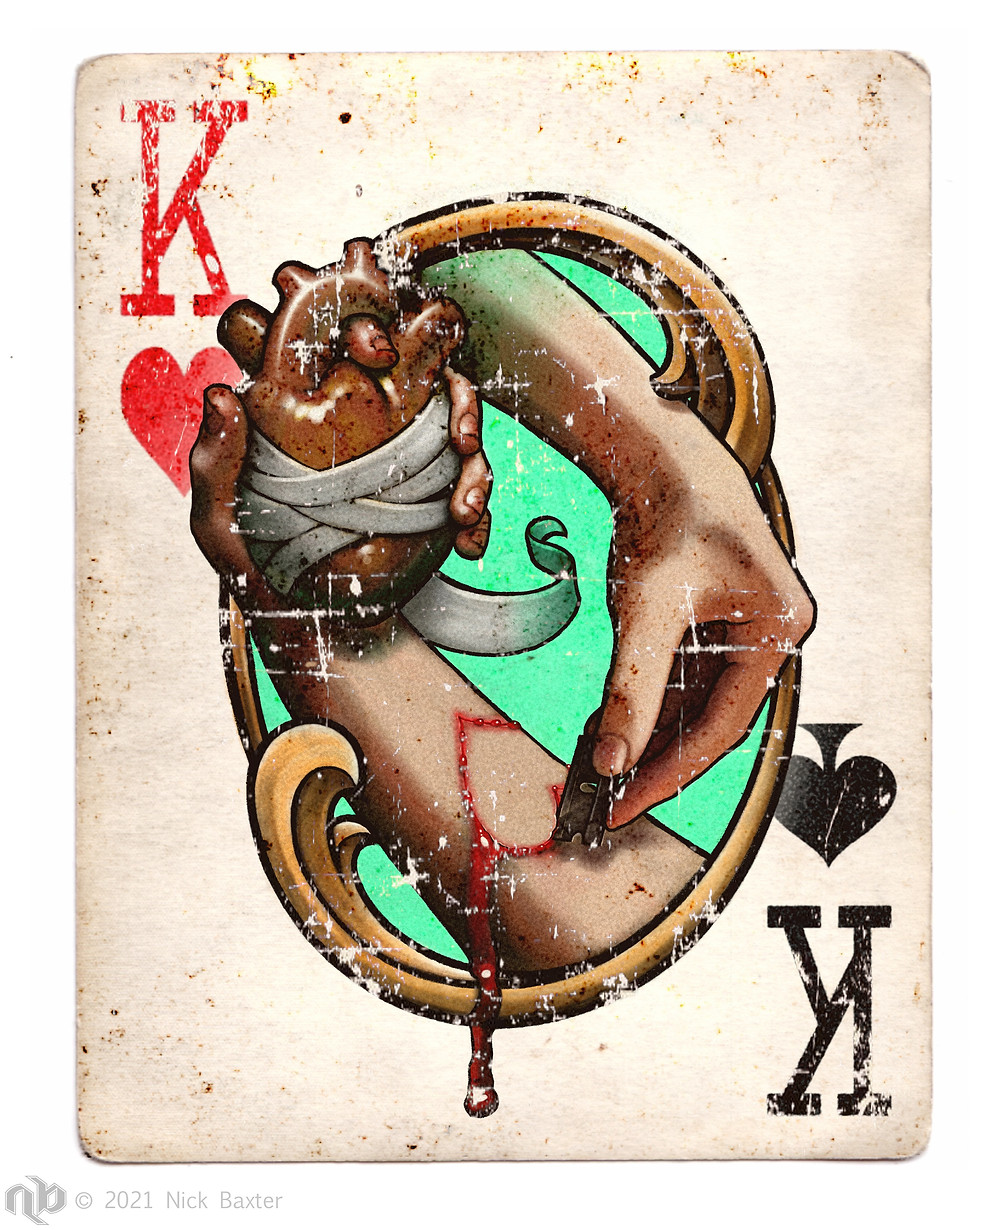 playing card, king of hearts and king of spades, hand holding human heart, hand cutting with razorblade